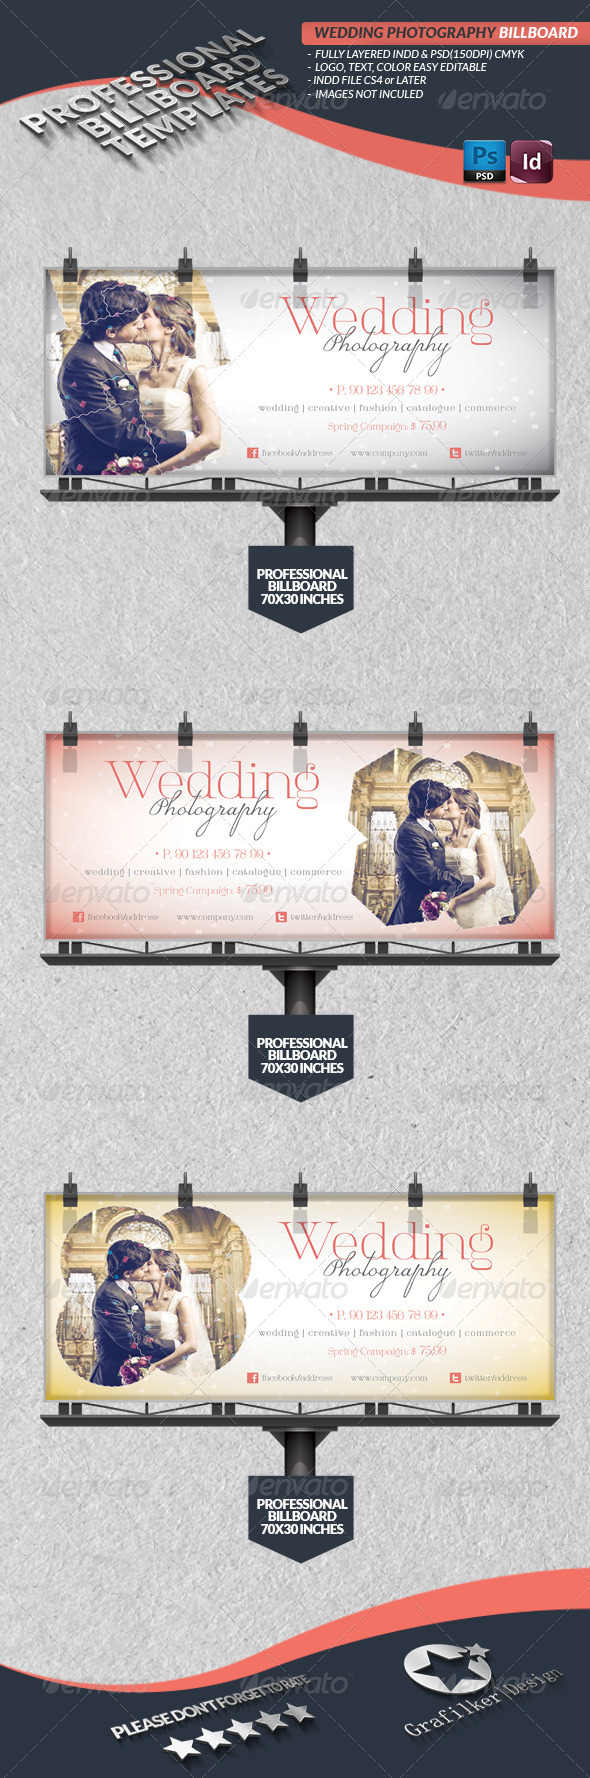 GraphicRiver Wedding Photography Billboard Template 4320914